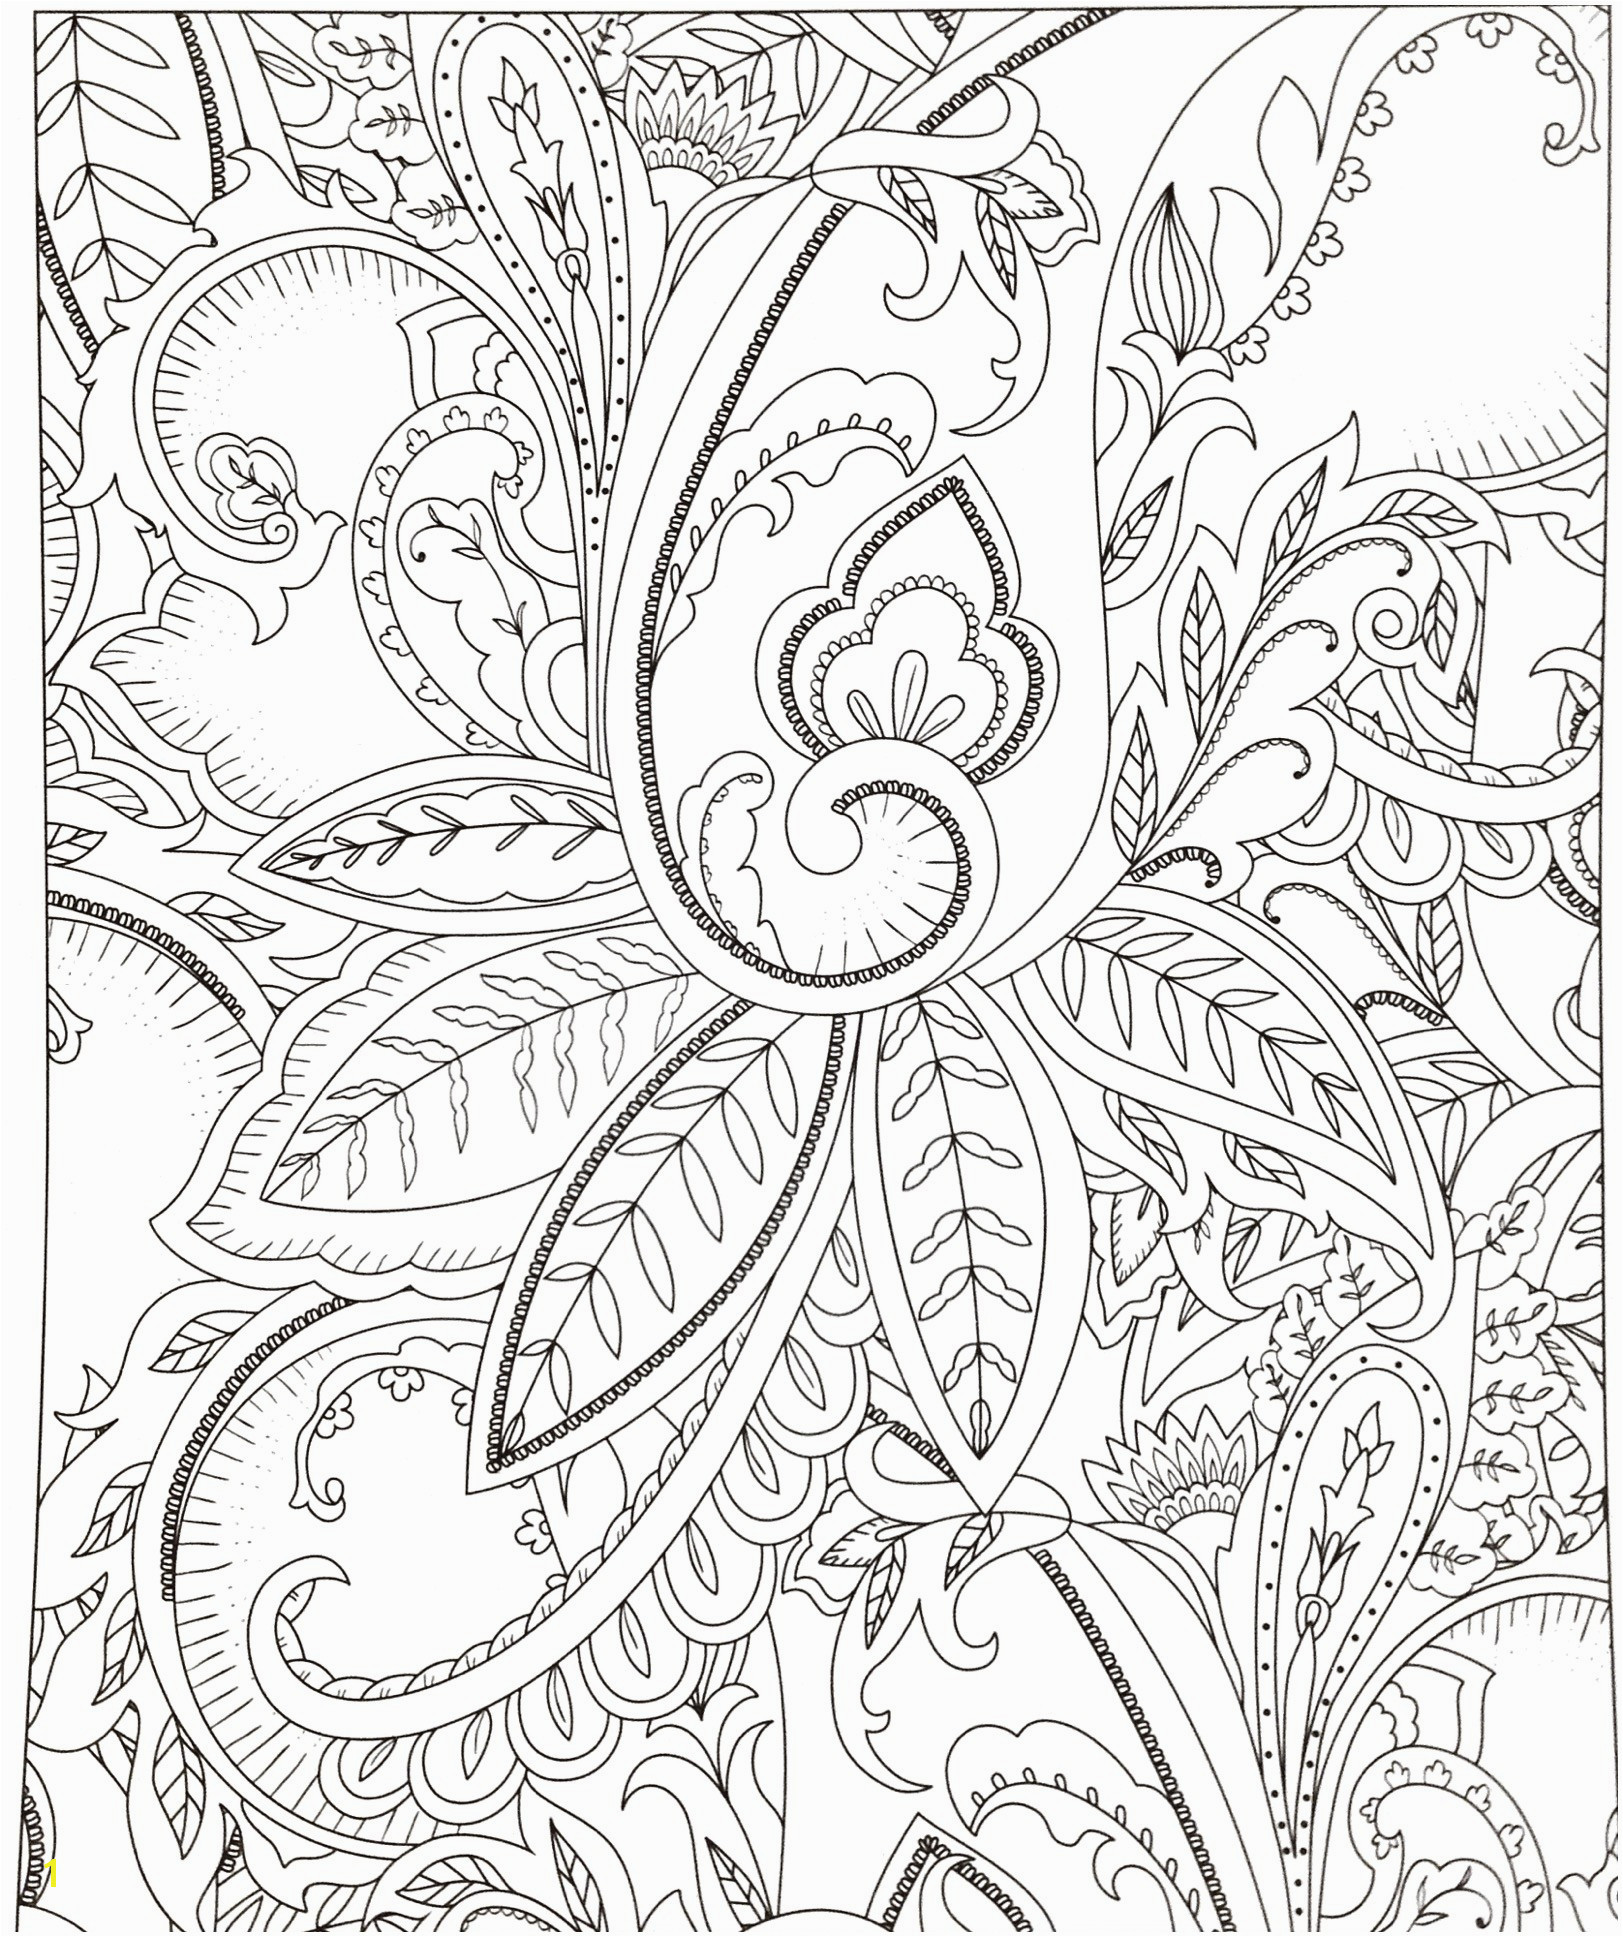 Printable plex Coloring Pages Printable Fresh S S Media Cache Ak0 Pinimg originals 0d B4 2c Free